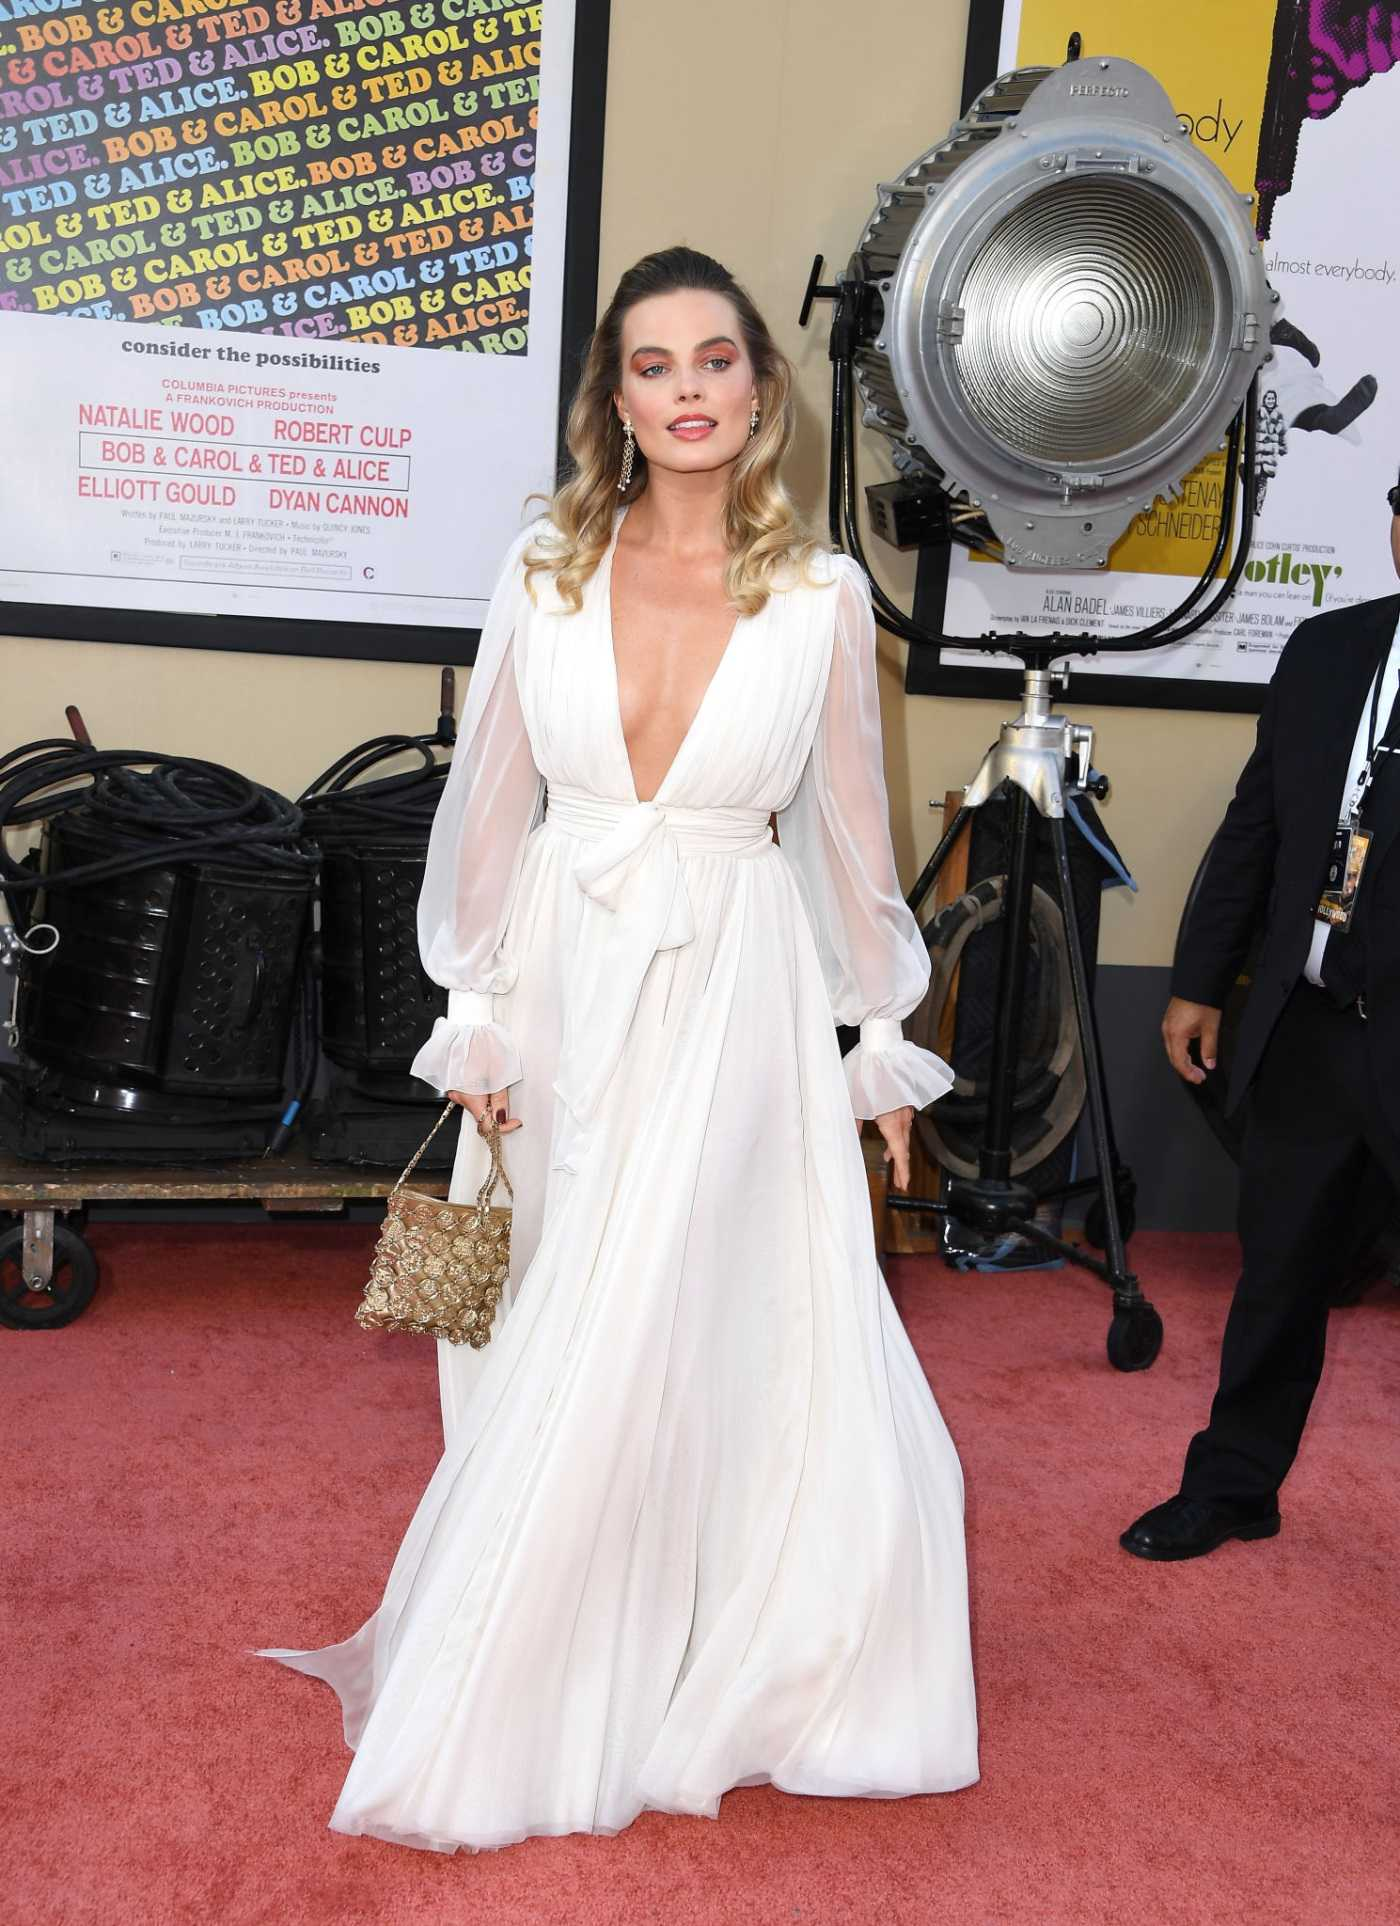 Margot Robbie Attends Once Upon A Time...In Hollywood Premiere in Los Angeles 07/22/2019